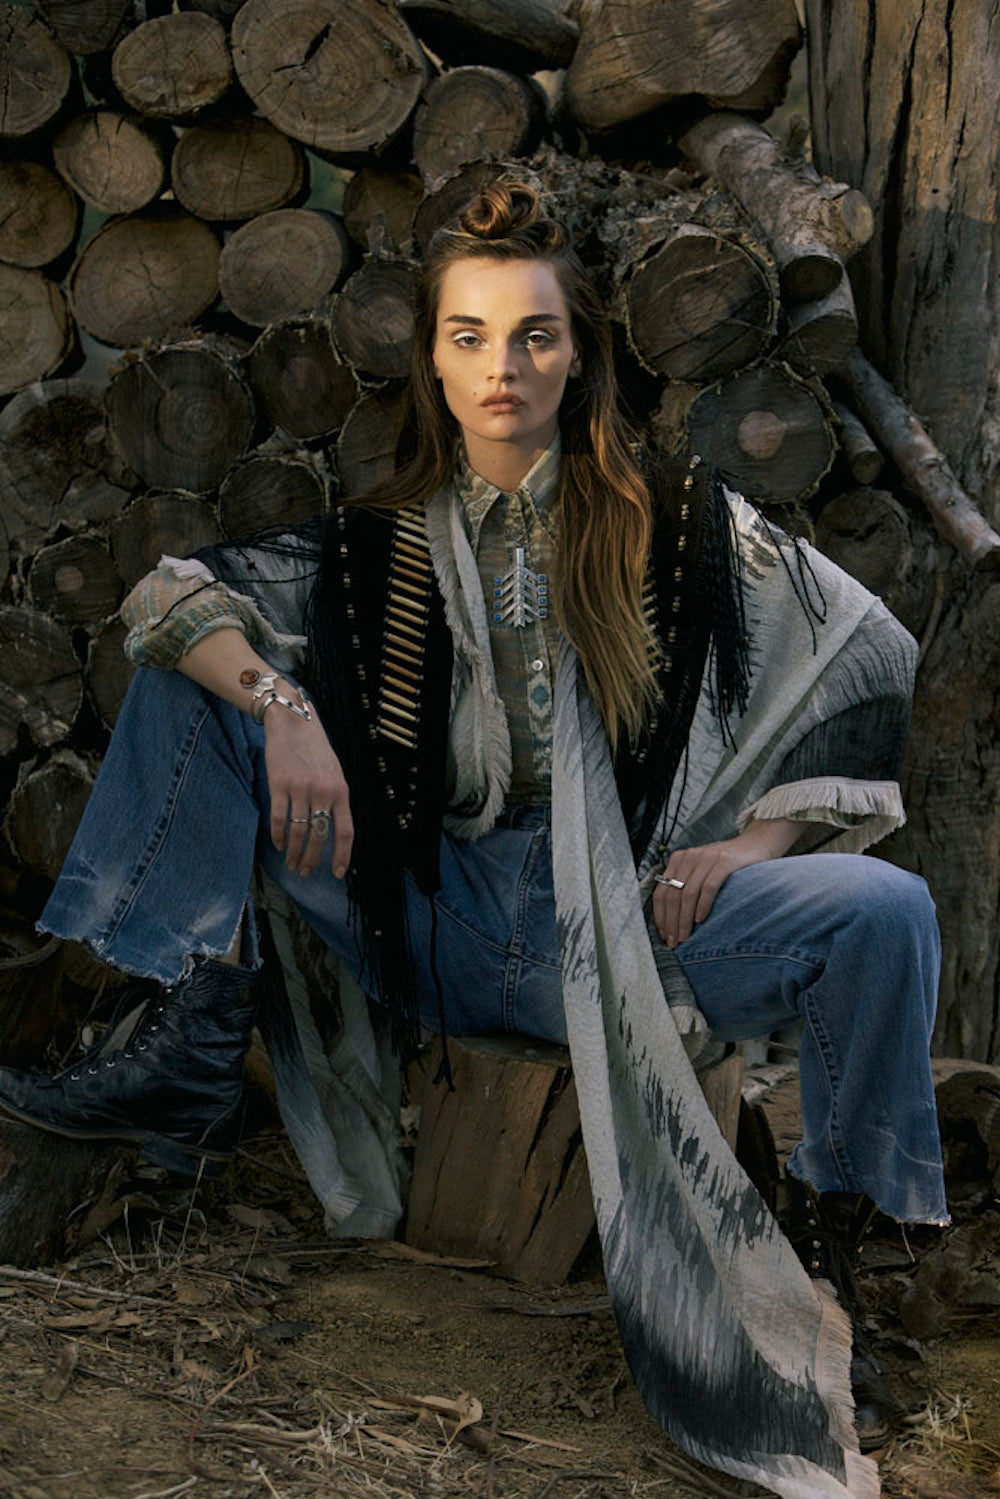 The2bandits Western Romance Lookbook- 2014